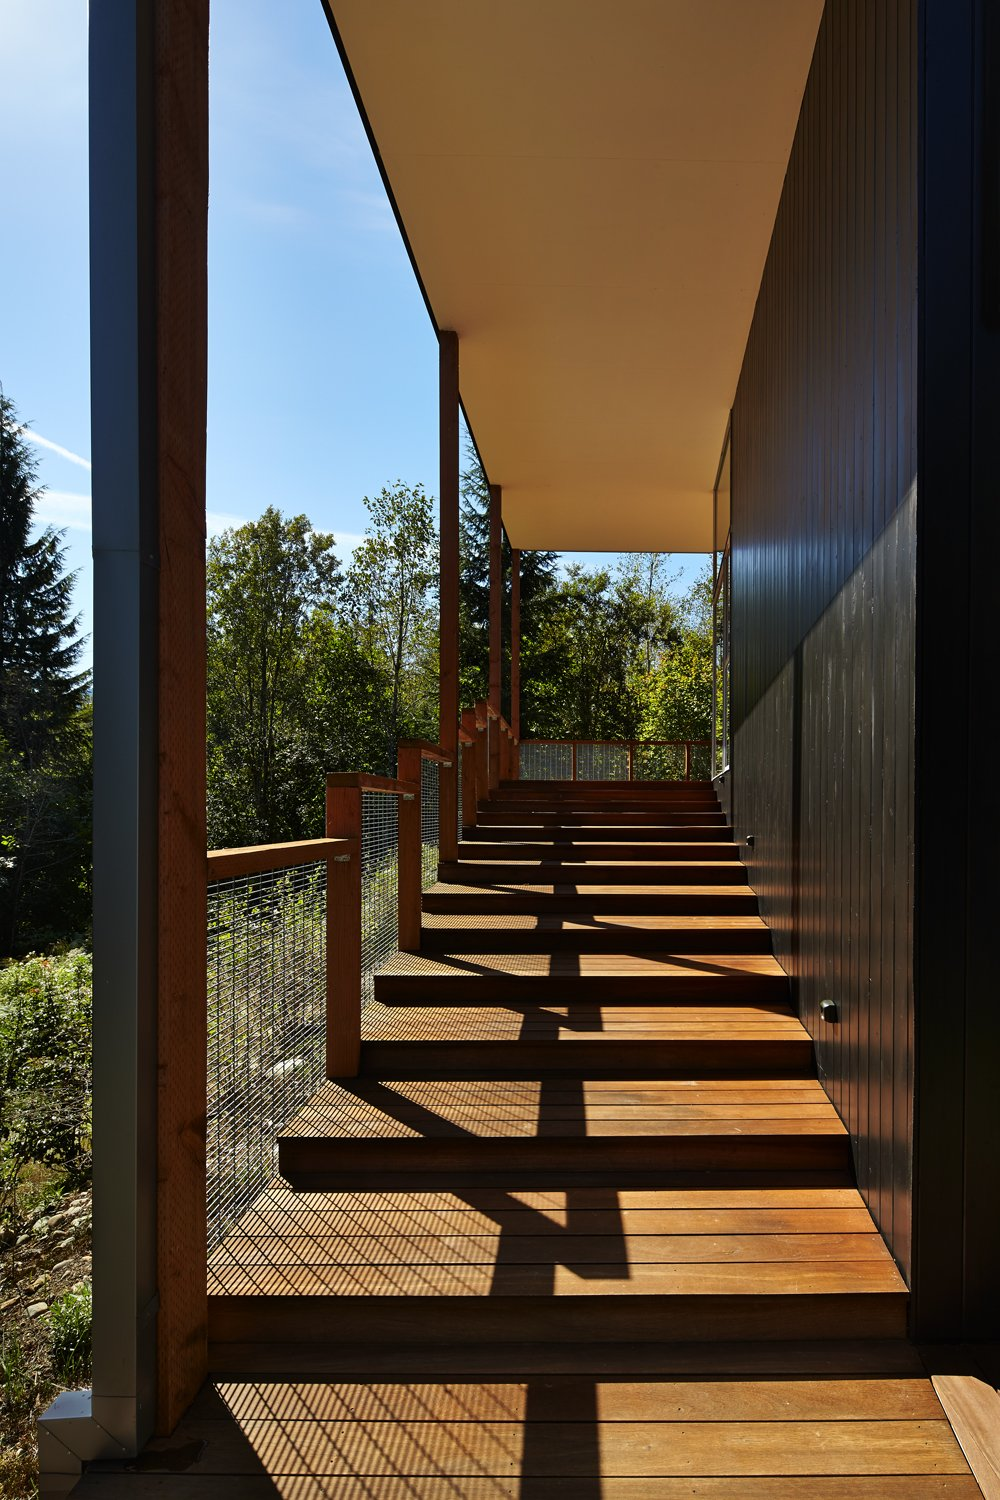 Staircase, Wood Tread, and Metal Railing  Bear Run Cabin by David Coleman / Architecture